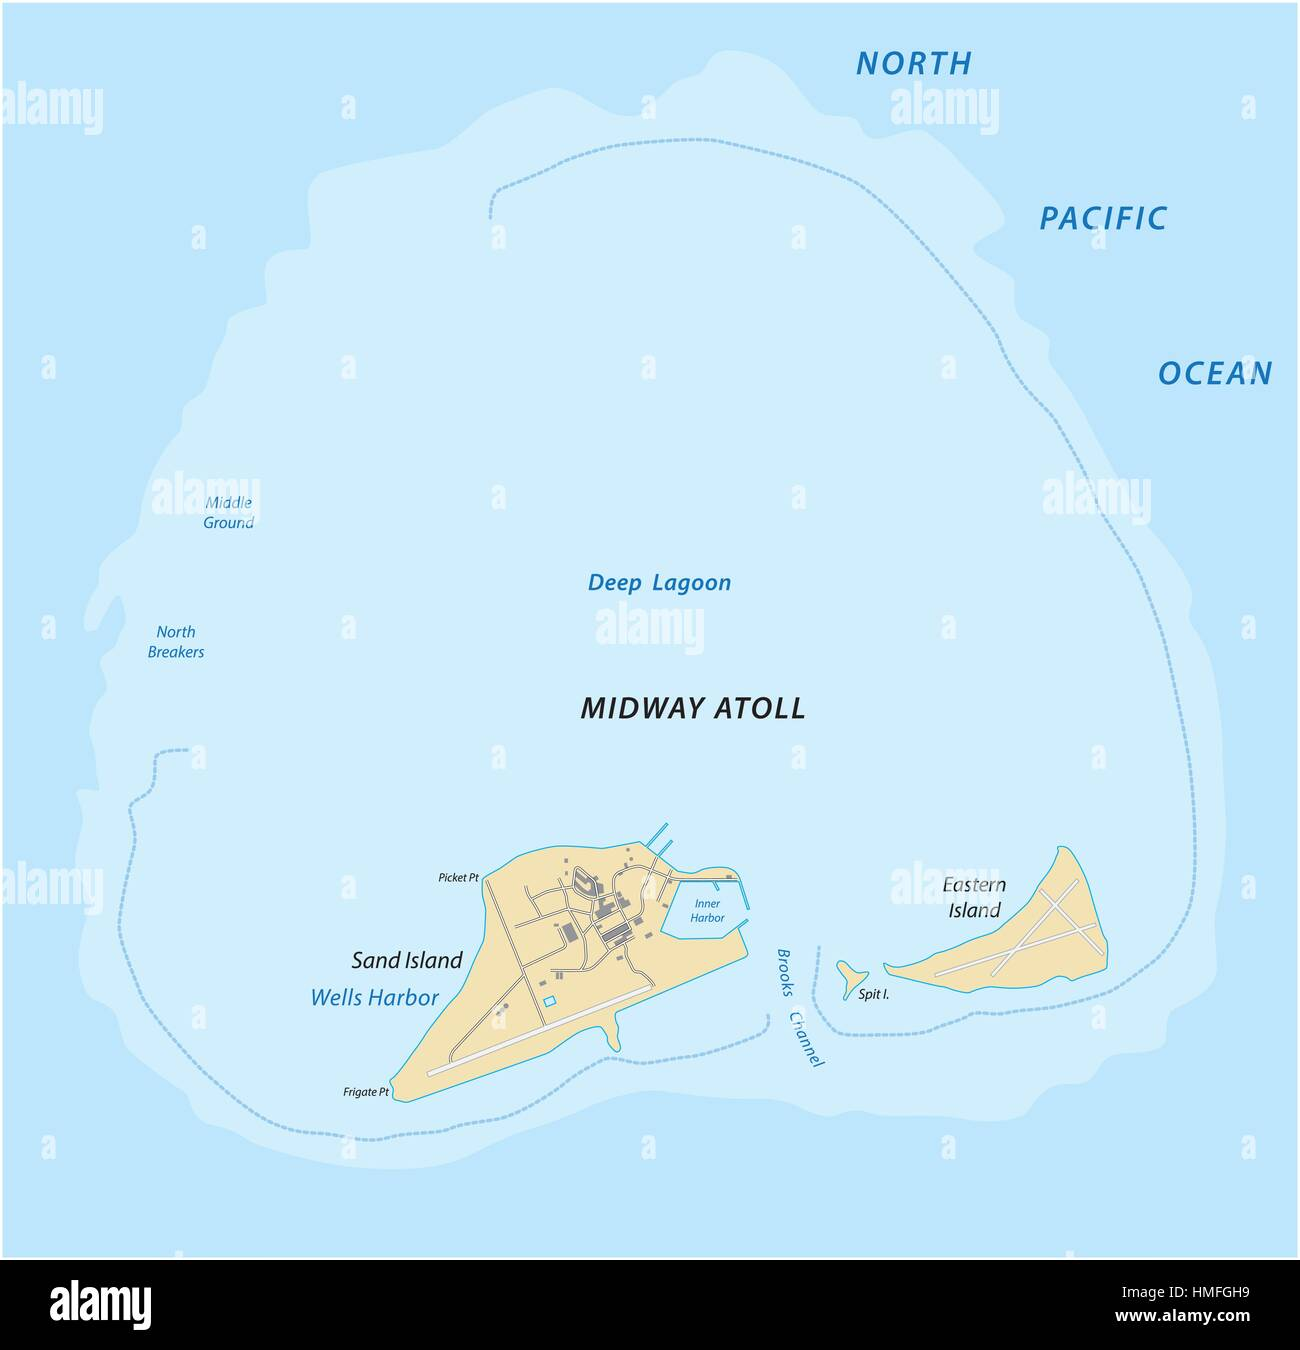 Map pacific ocean islands stock photos map pacific ocean islands map of the midway atoll in the northern pacific ocean stock image gumiabroncs Gallery